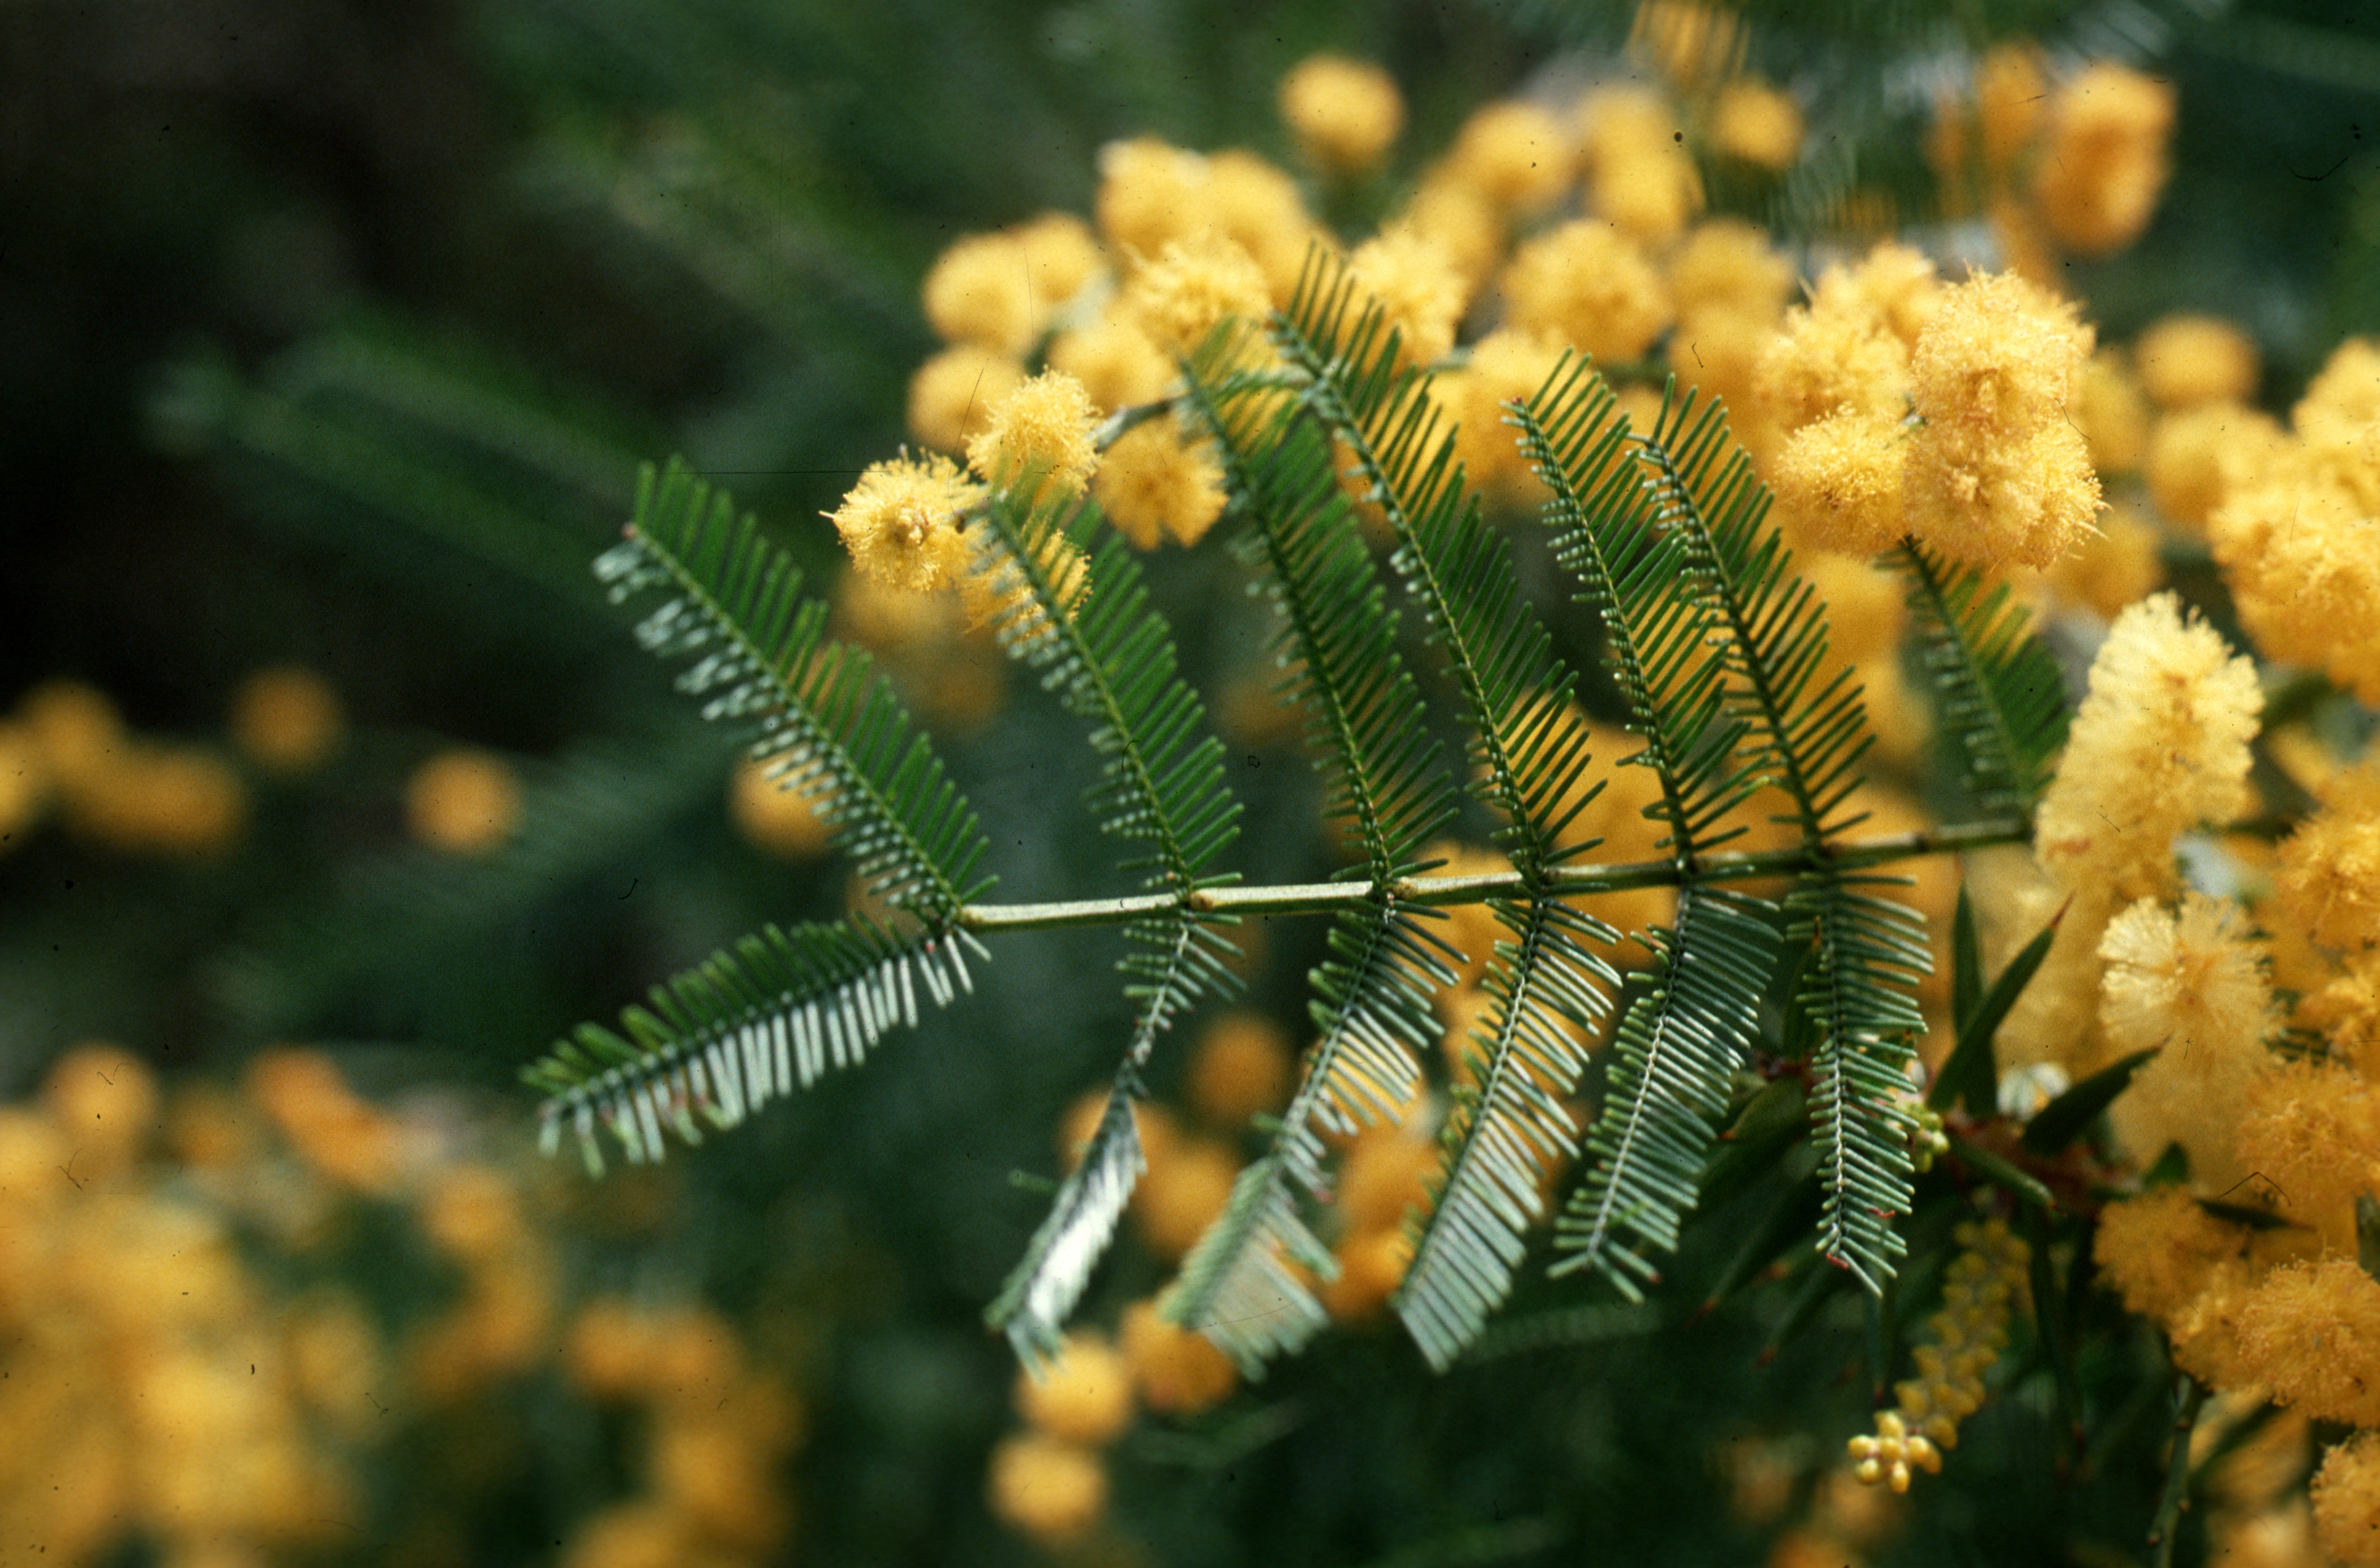 Acacia tree and flowers